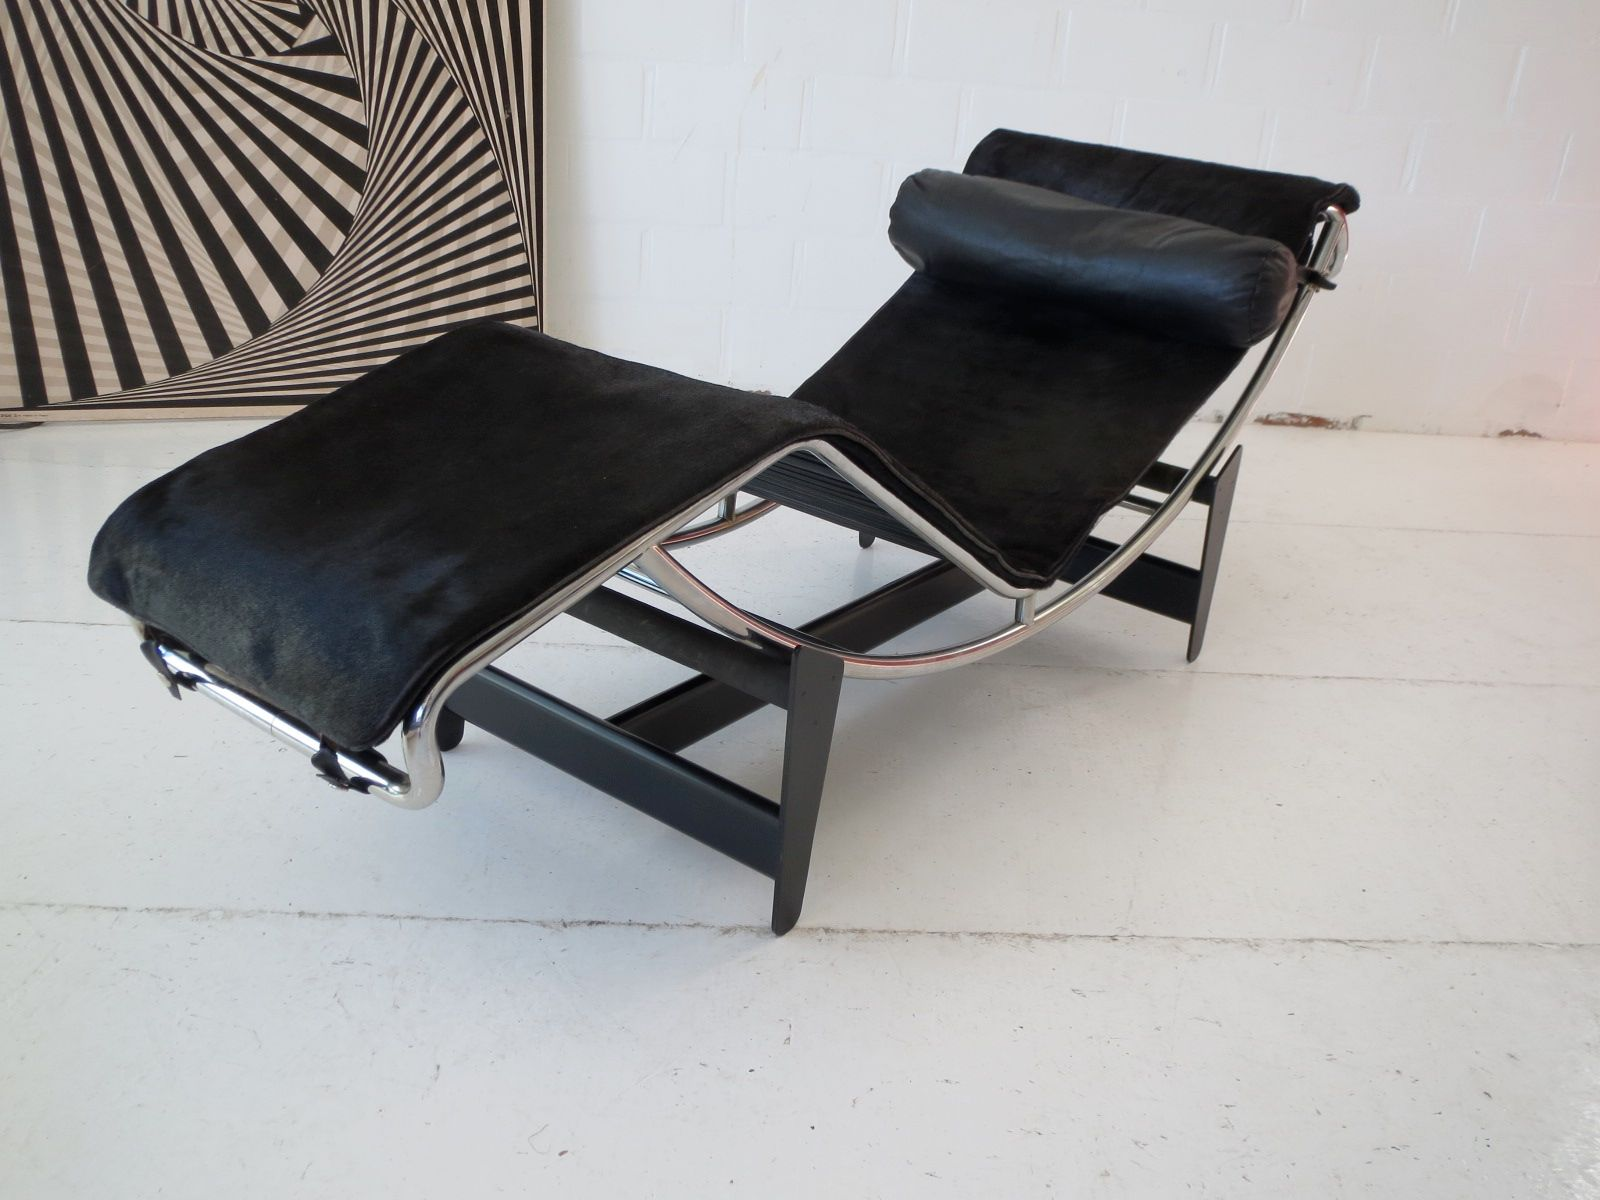 Early under 750 numbered lc4 chaise longue by le for Chaise longue design le corbusier